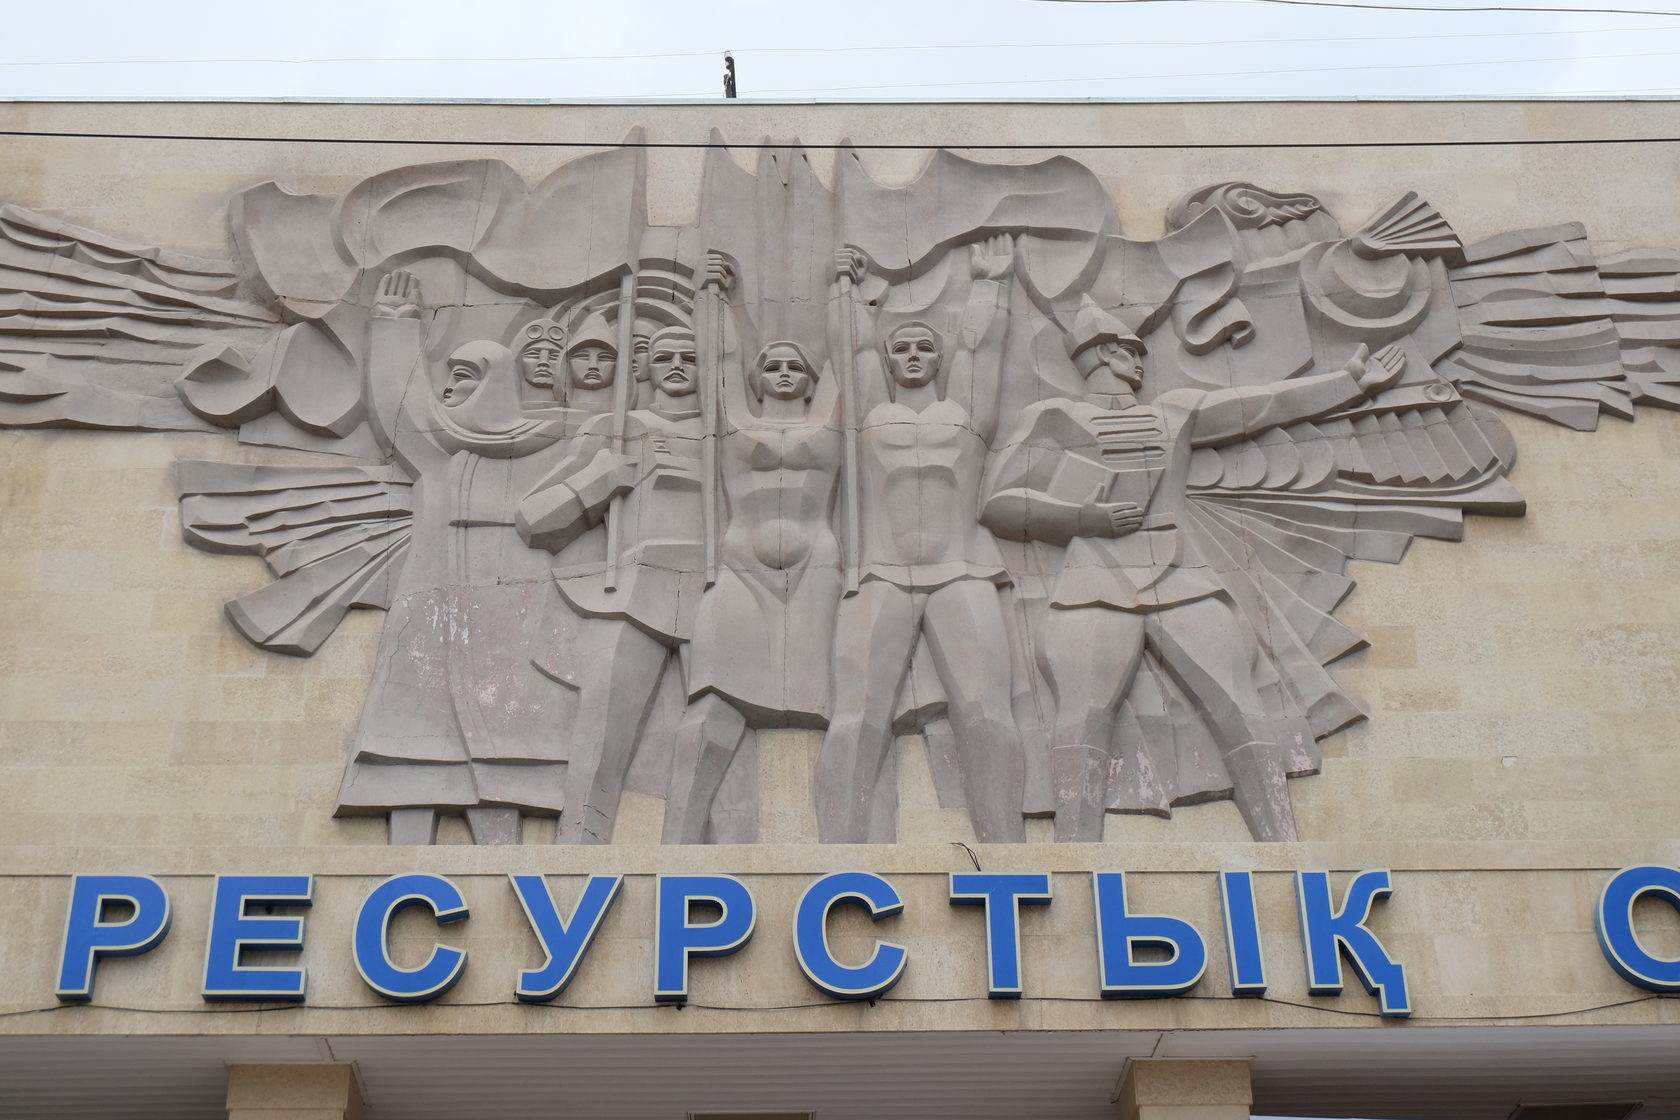 "<div style=""line-height:20px;"" data-customstyle=""yes""><span style=""font-size: 16px;"">Shymkent<br /></span><br />Sculptural Relief <br /><br /></div>"